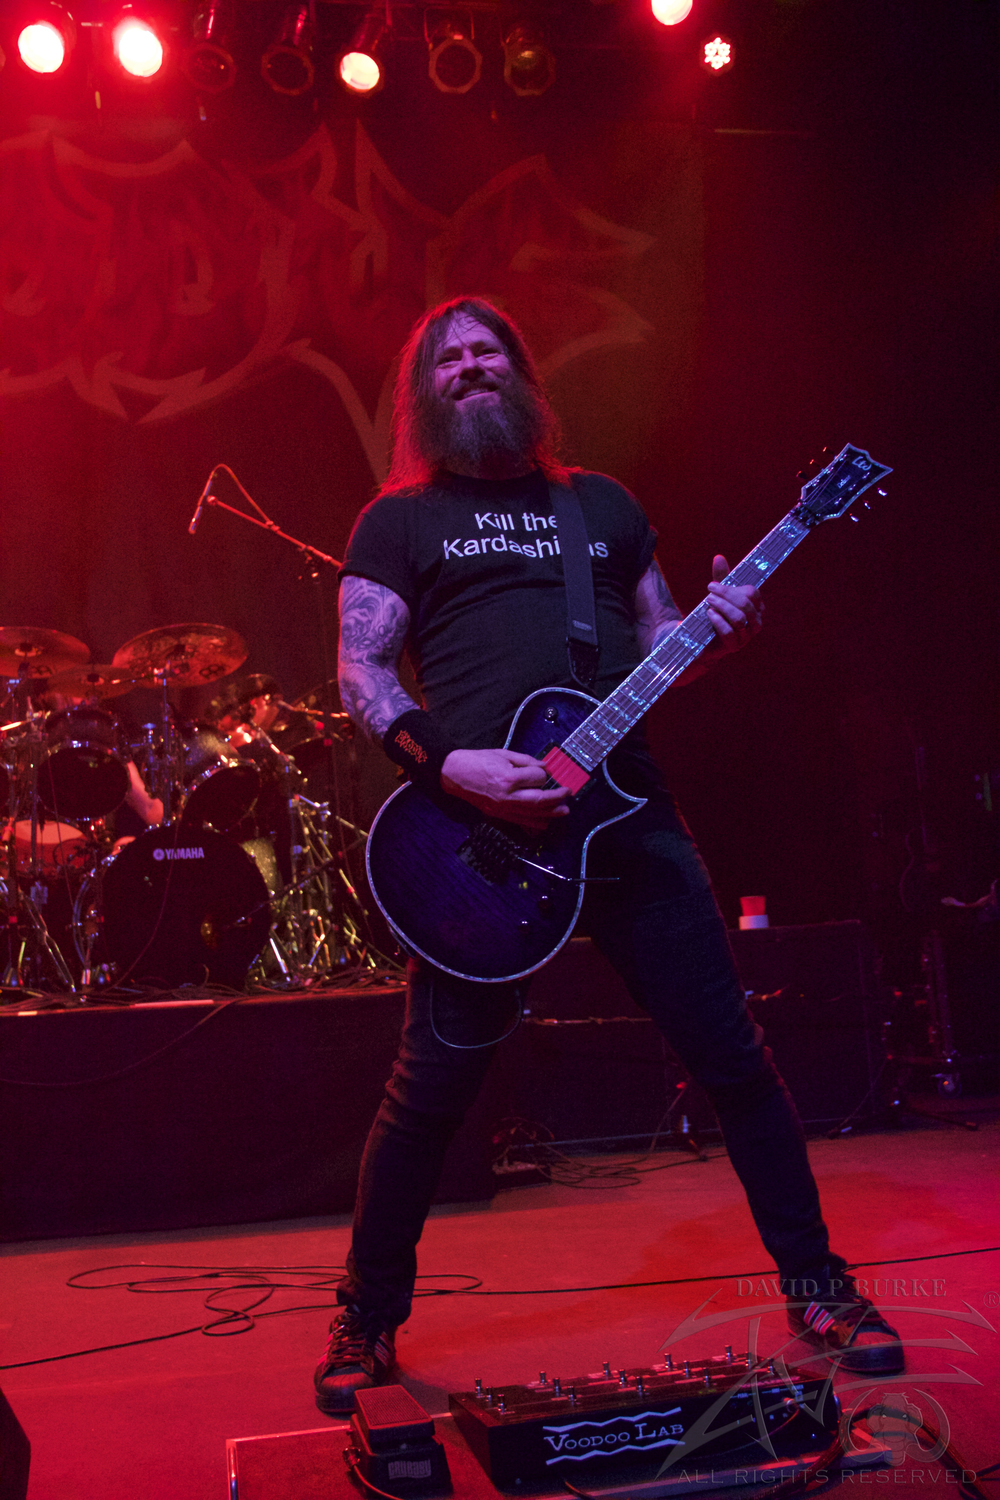 Gary Holt having a blast    photo:David Burke